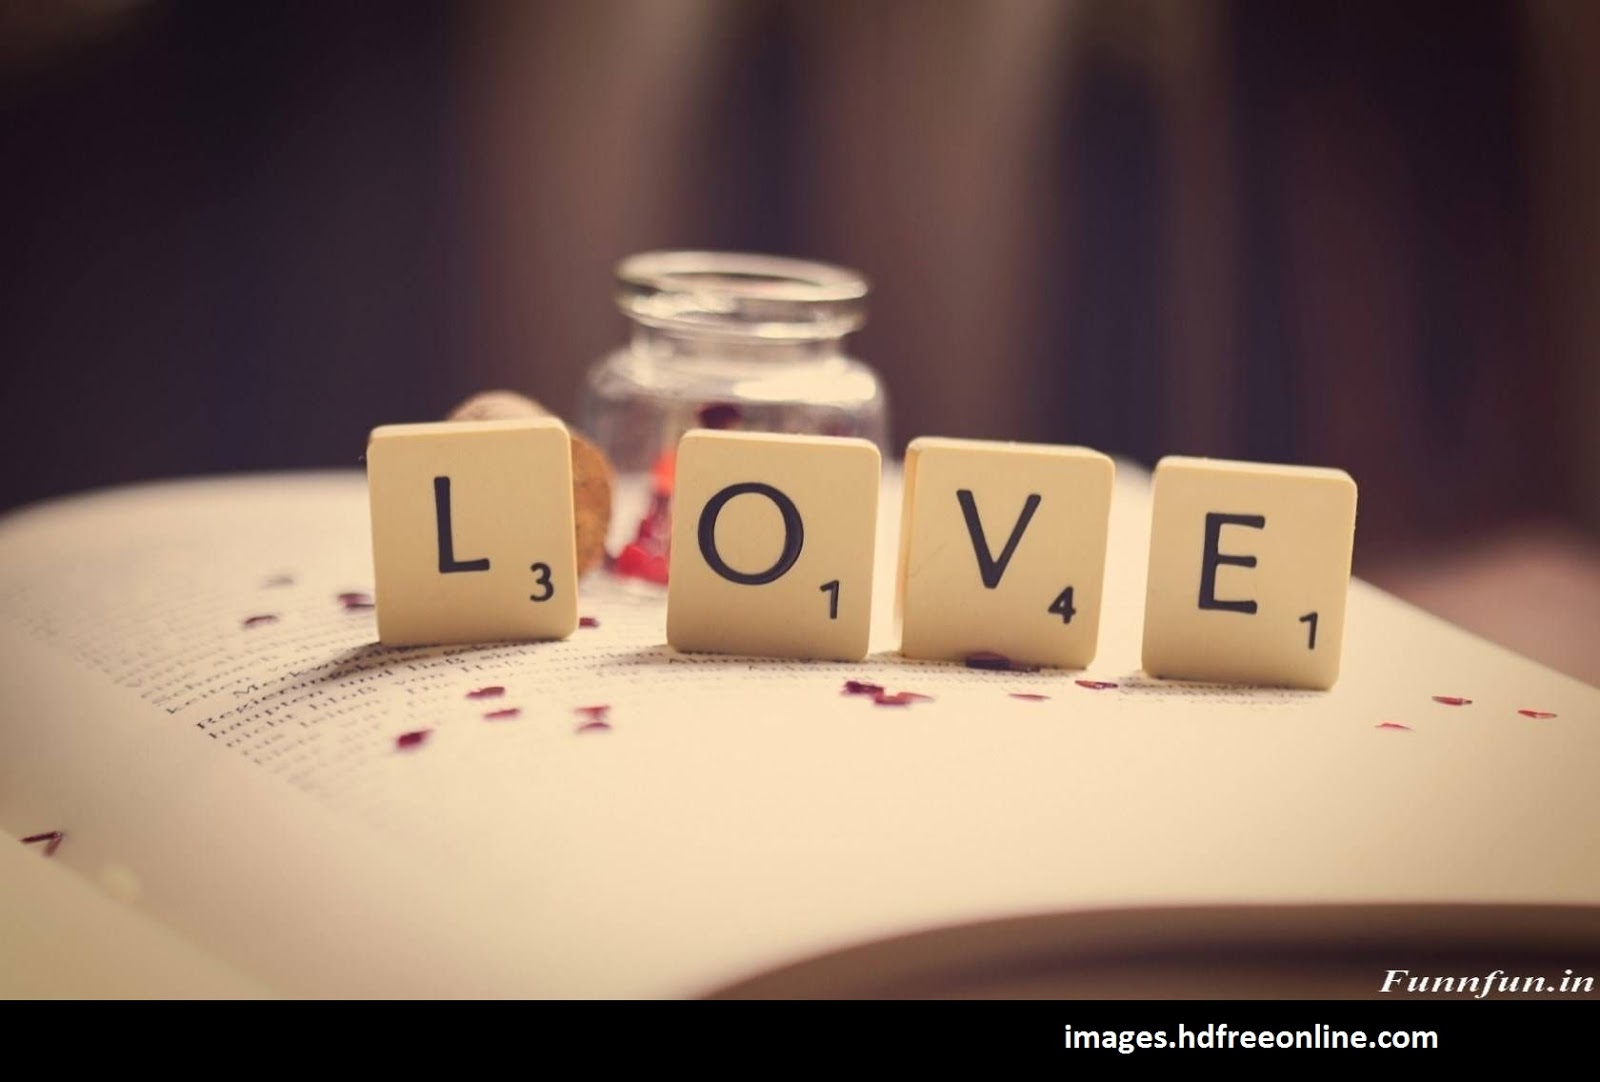 Udas Poet Poetry Download Cute Love Wallpapers For Mobile Phones Hd